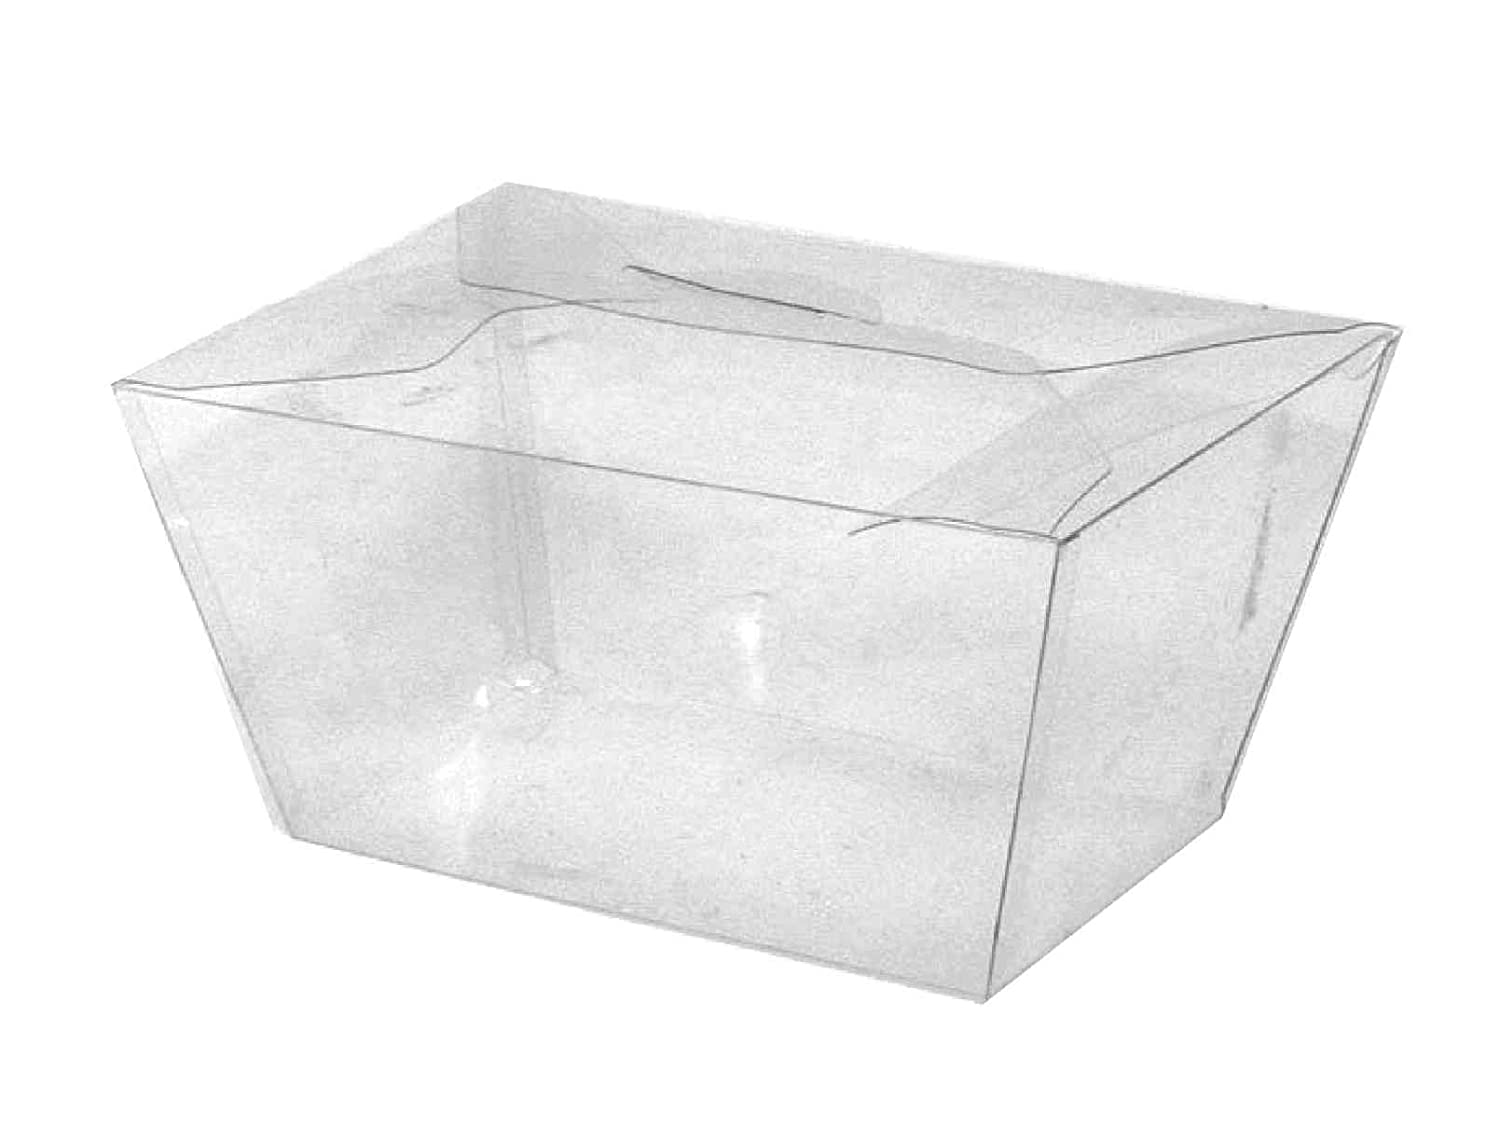 Choice-Pac N-32 Top Opening, Tapered Rectangle Deli Box (Case of 200)